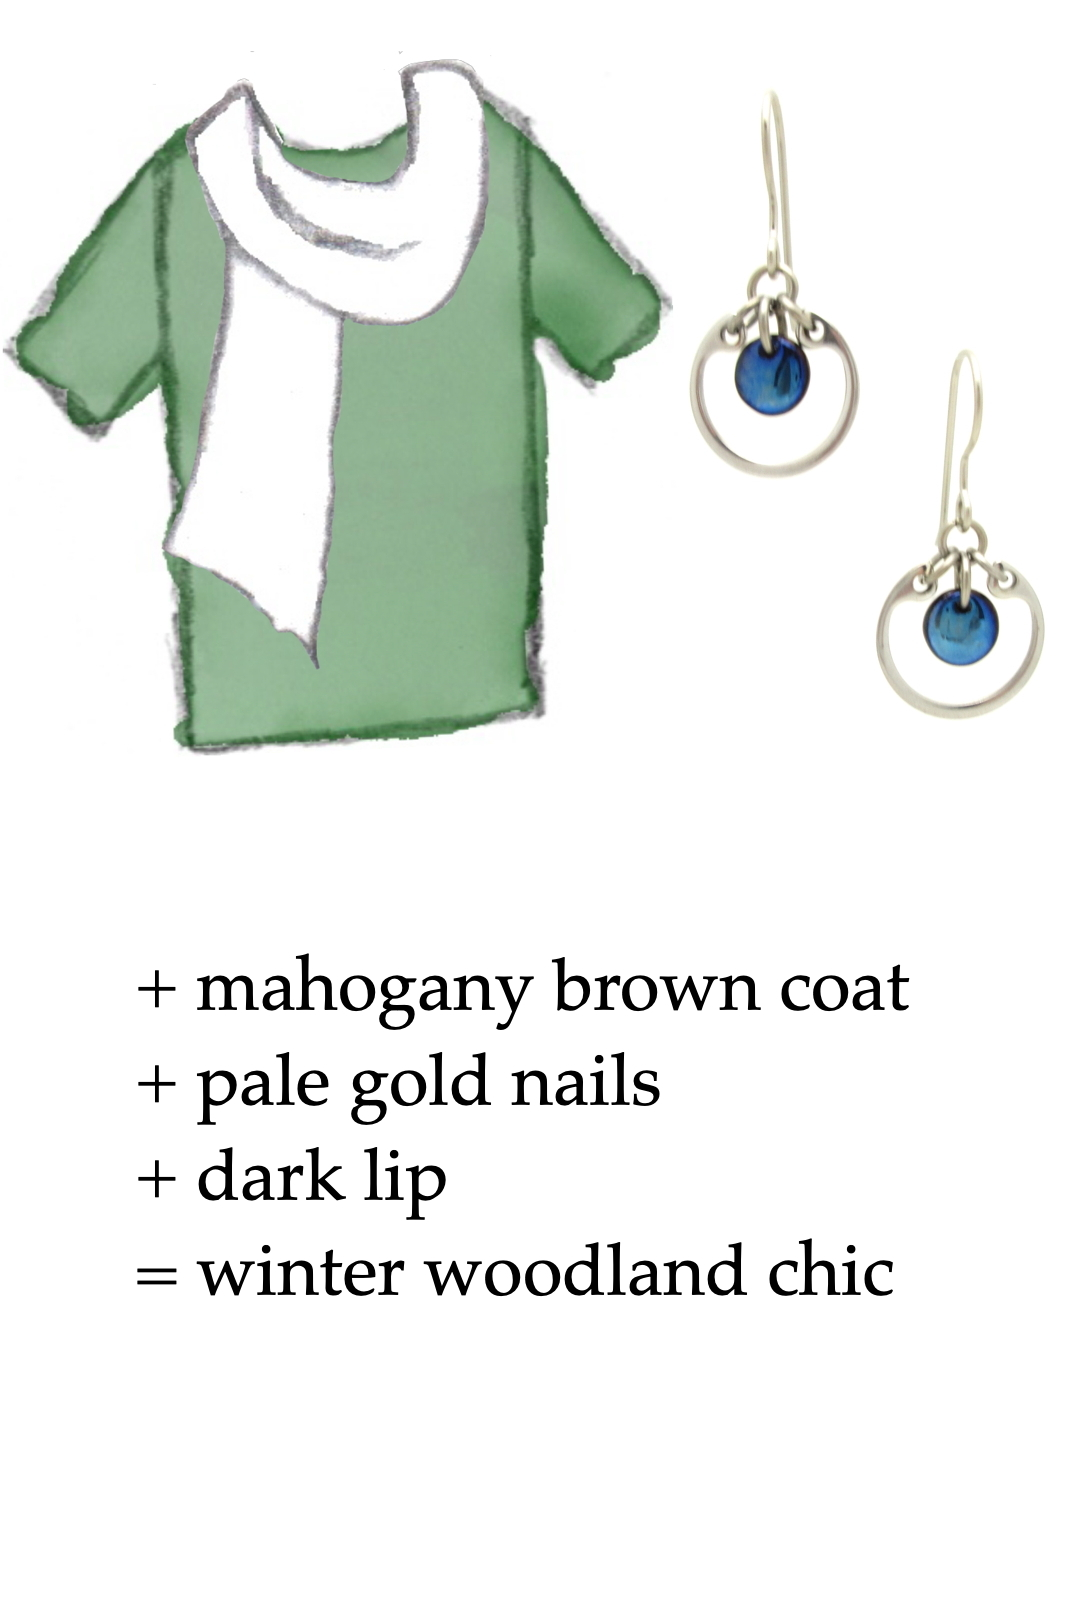 style sketch of a green tee + white scarf with navy blue modern circle earrings by wraptillion; text reads + mahogany brown coat + pale gold nails + dark lip = winter woodland chic